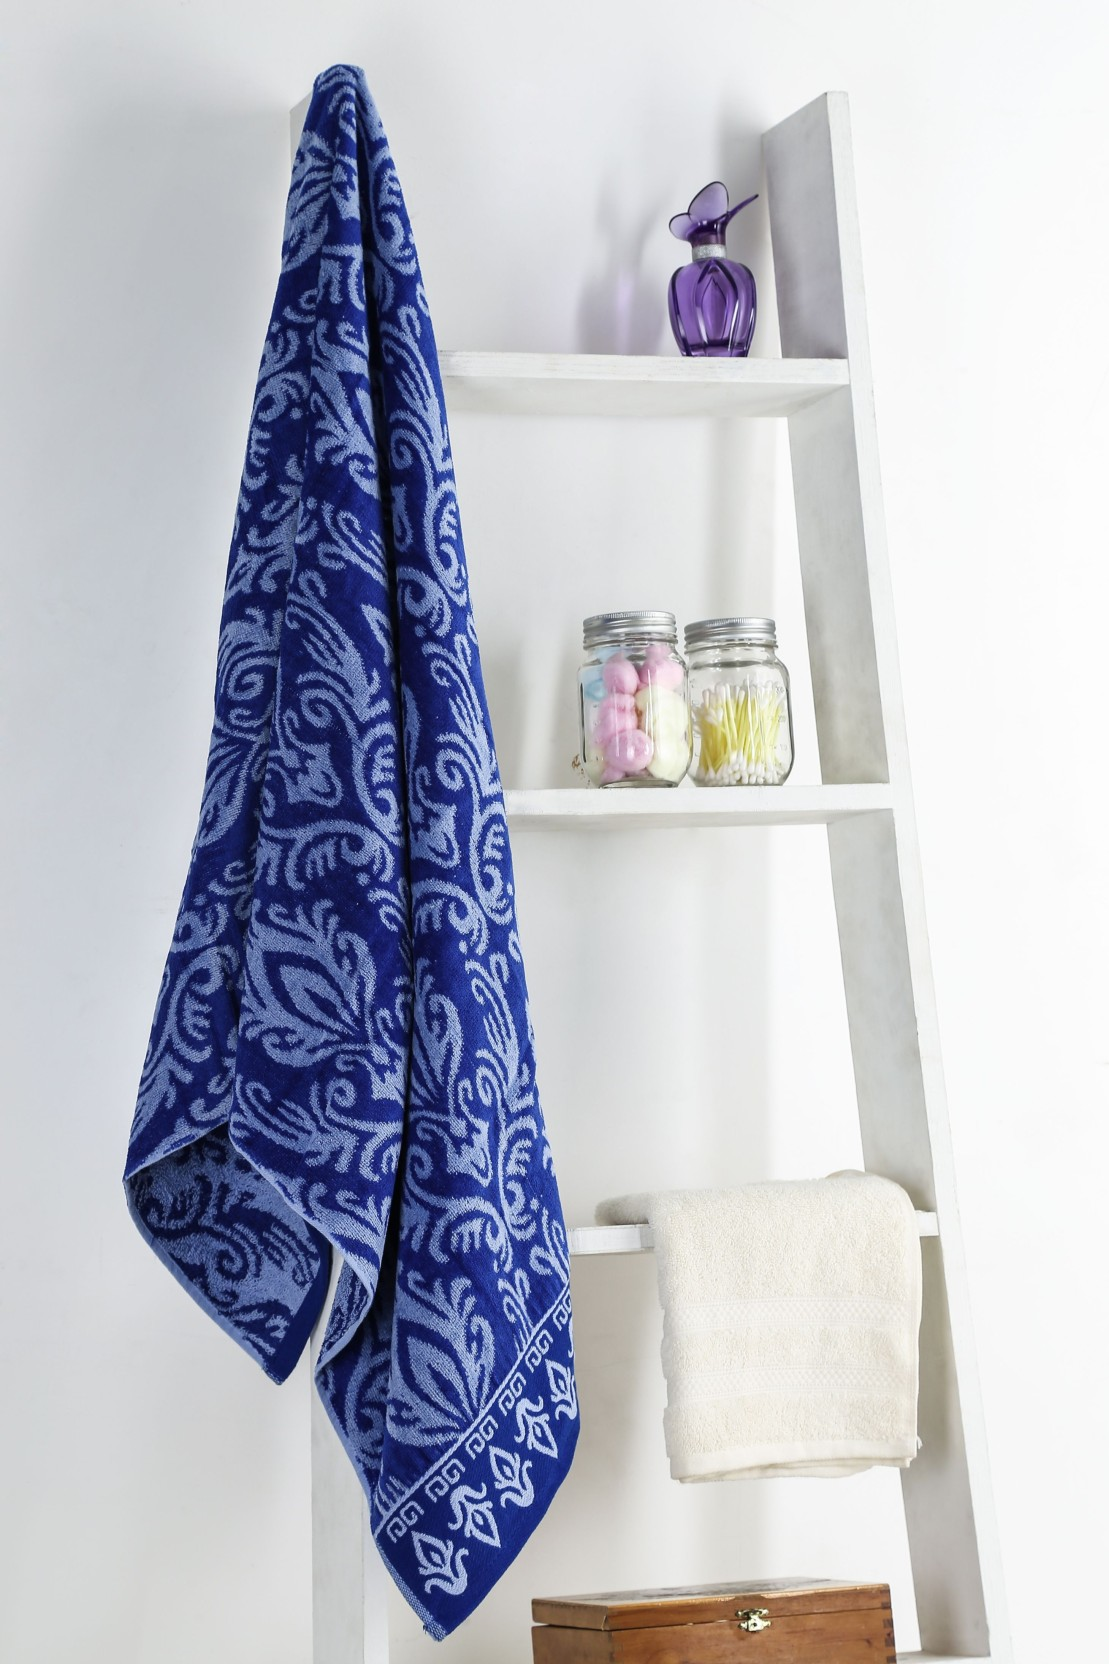 Turkish Bath Cotton 410 Gsm Bath Towel Buy Turkish Bath Cotton 410